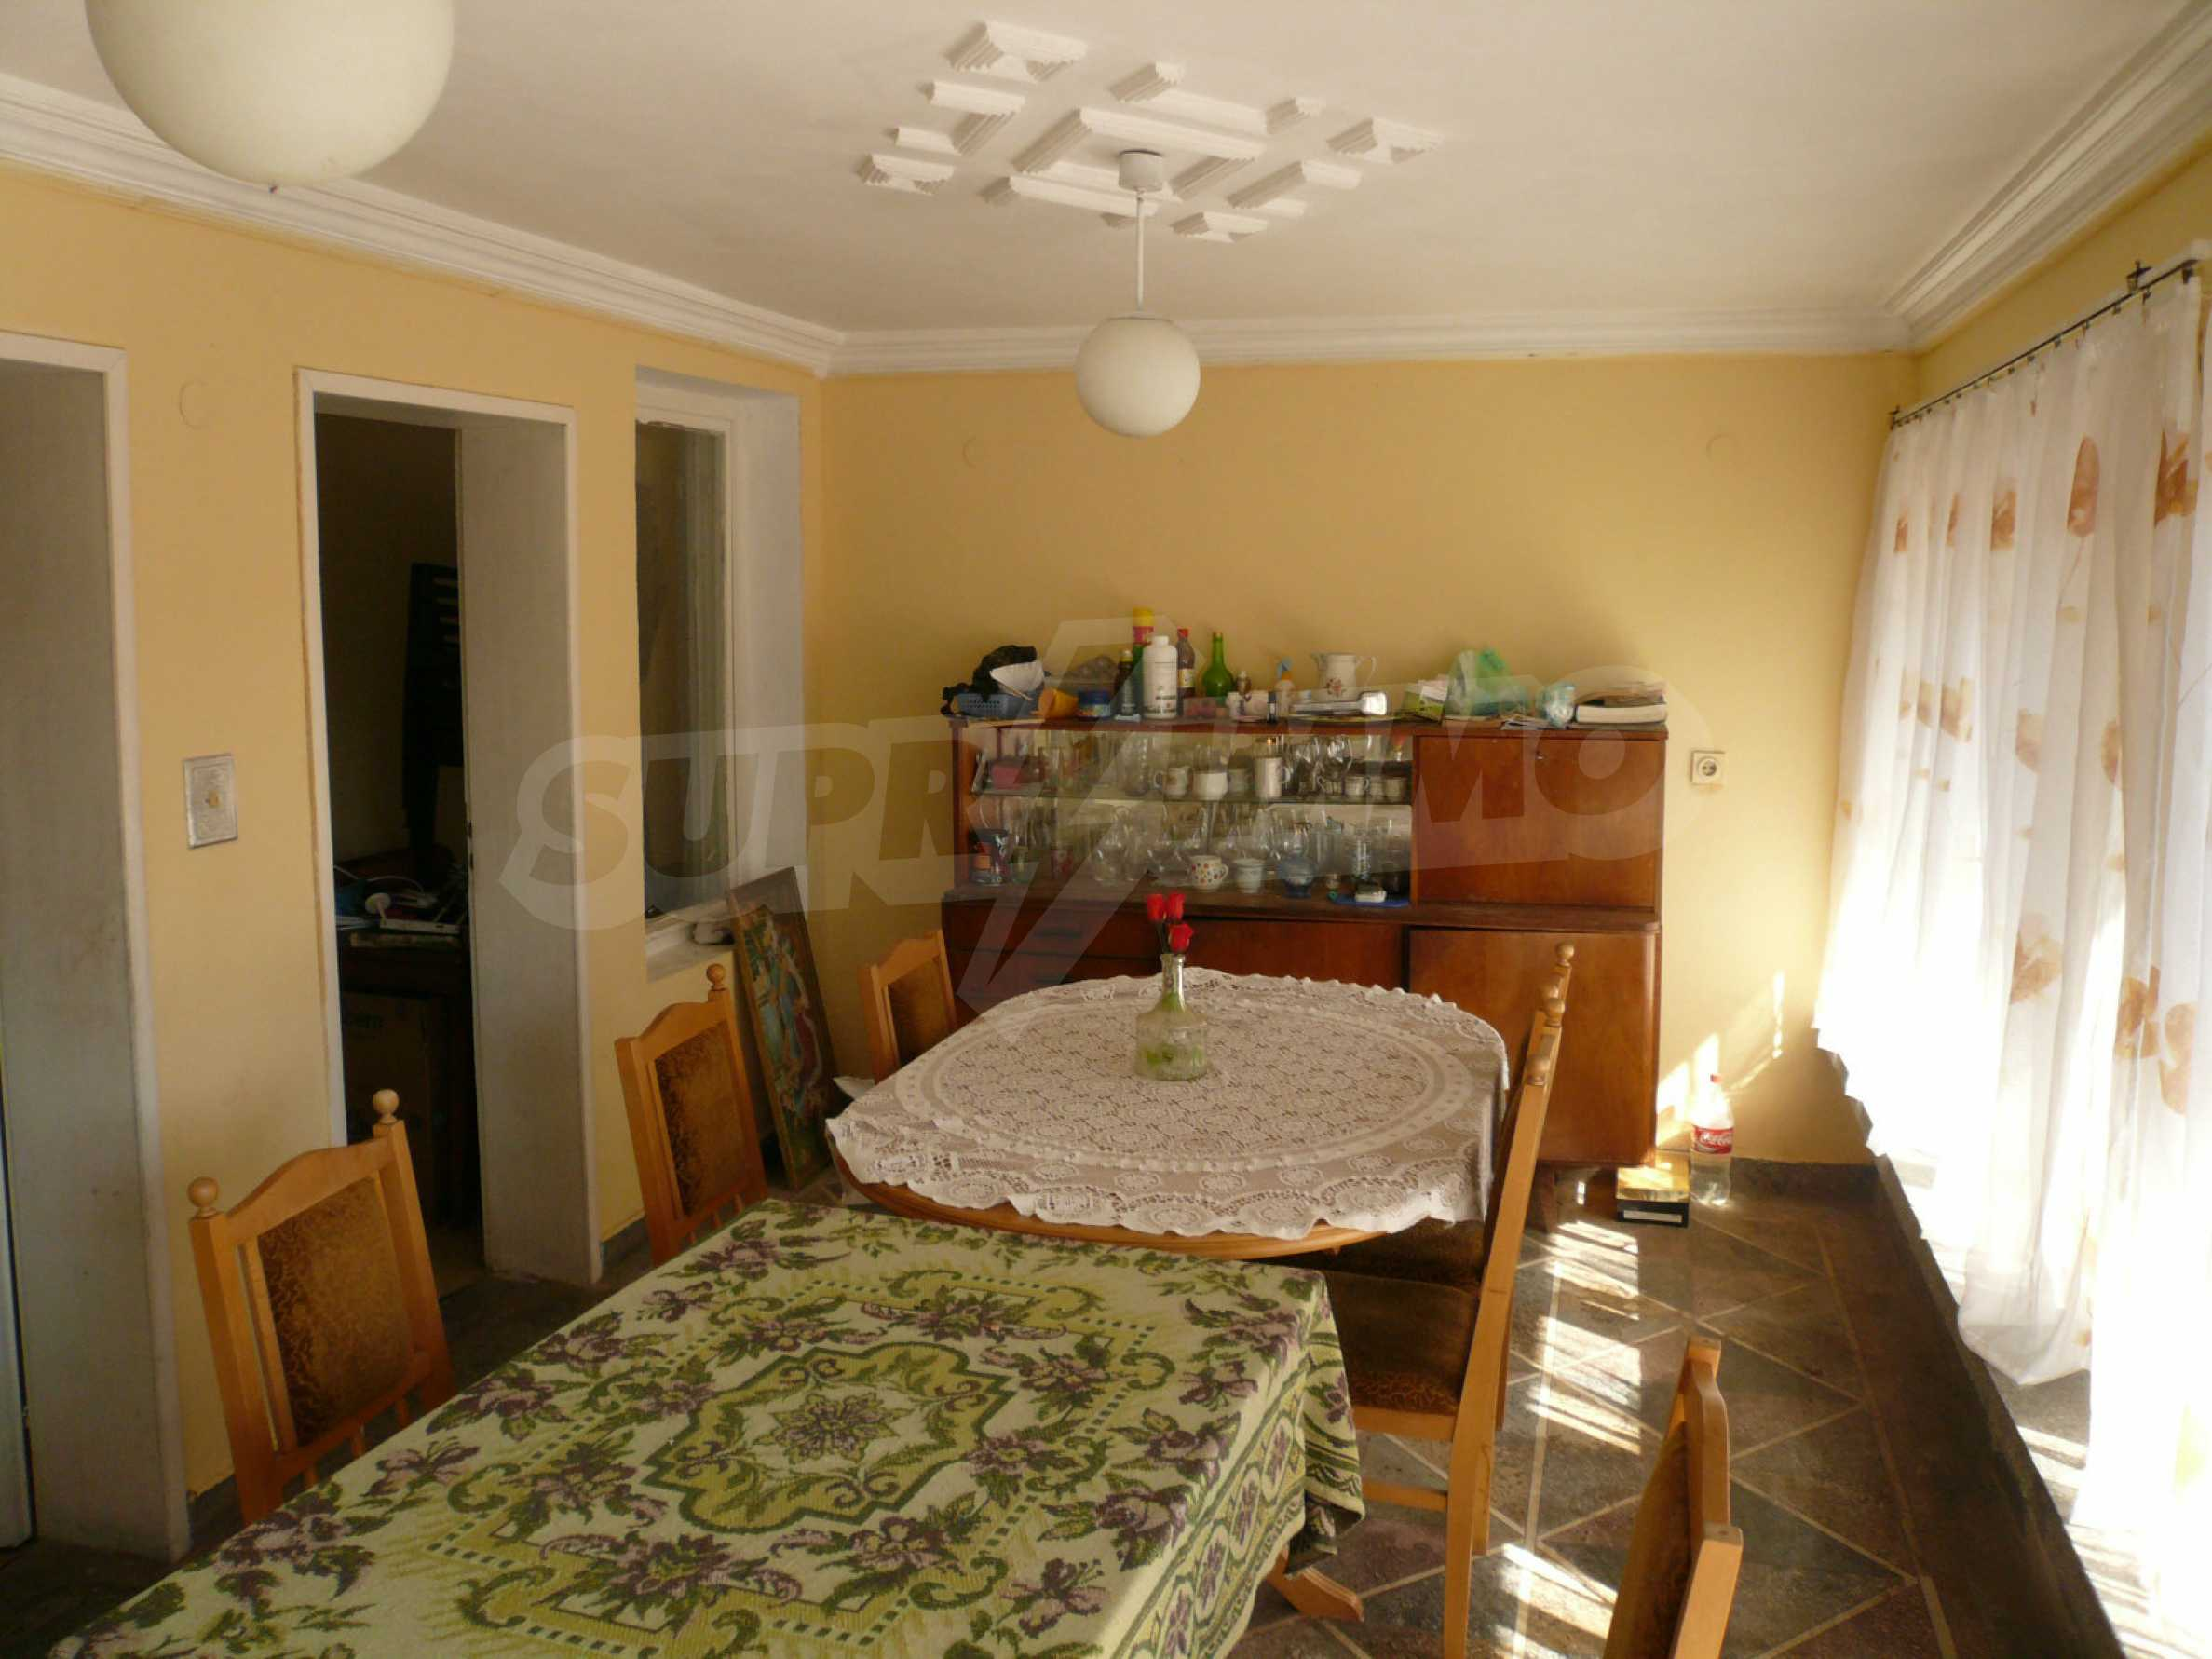 Rural houses with garden 12 km from Vidin 10